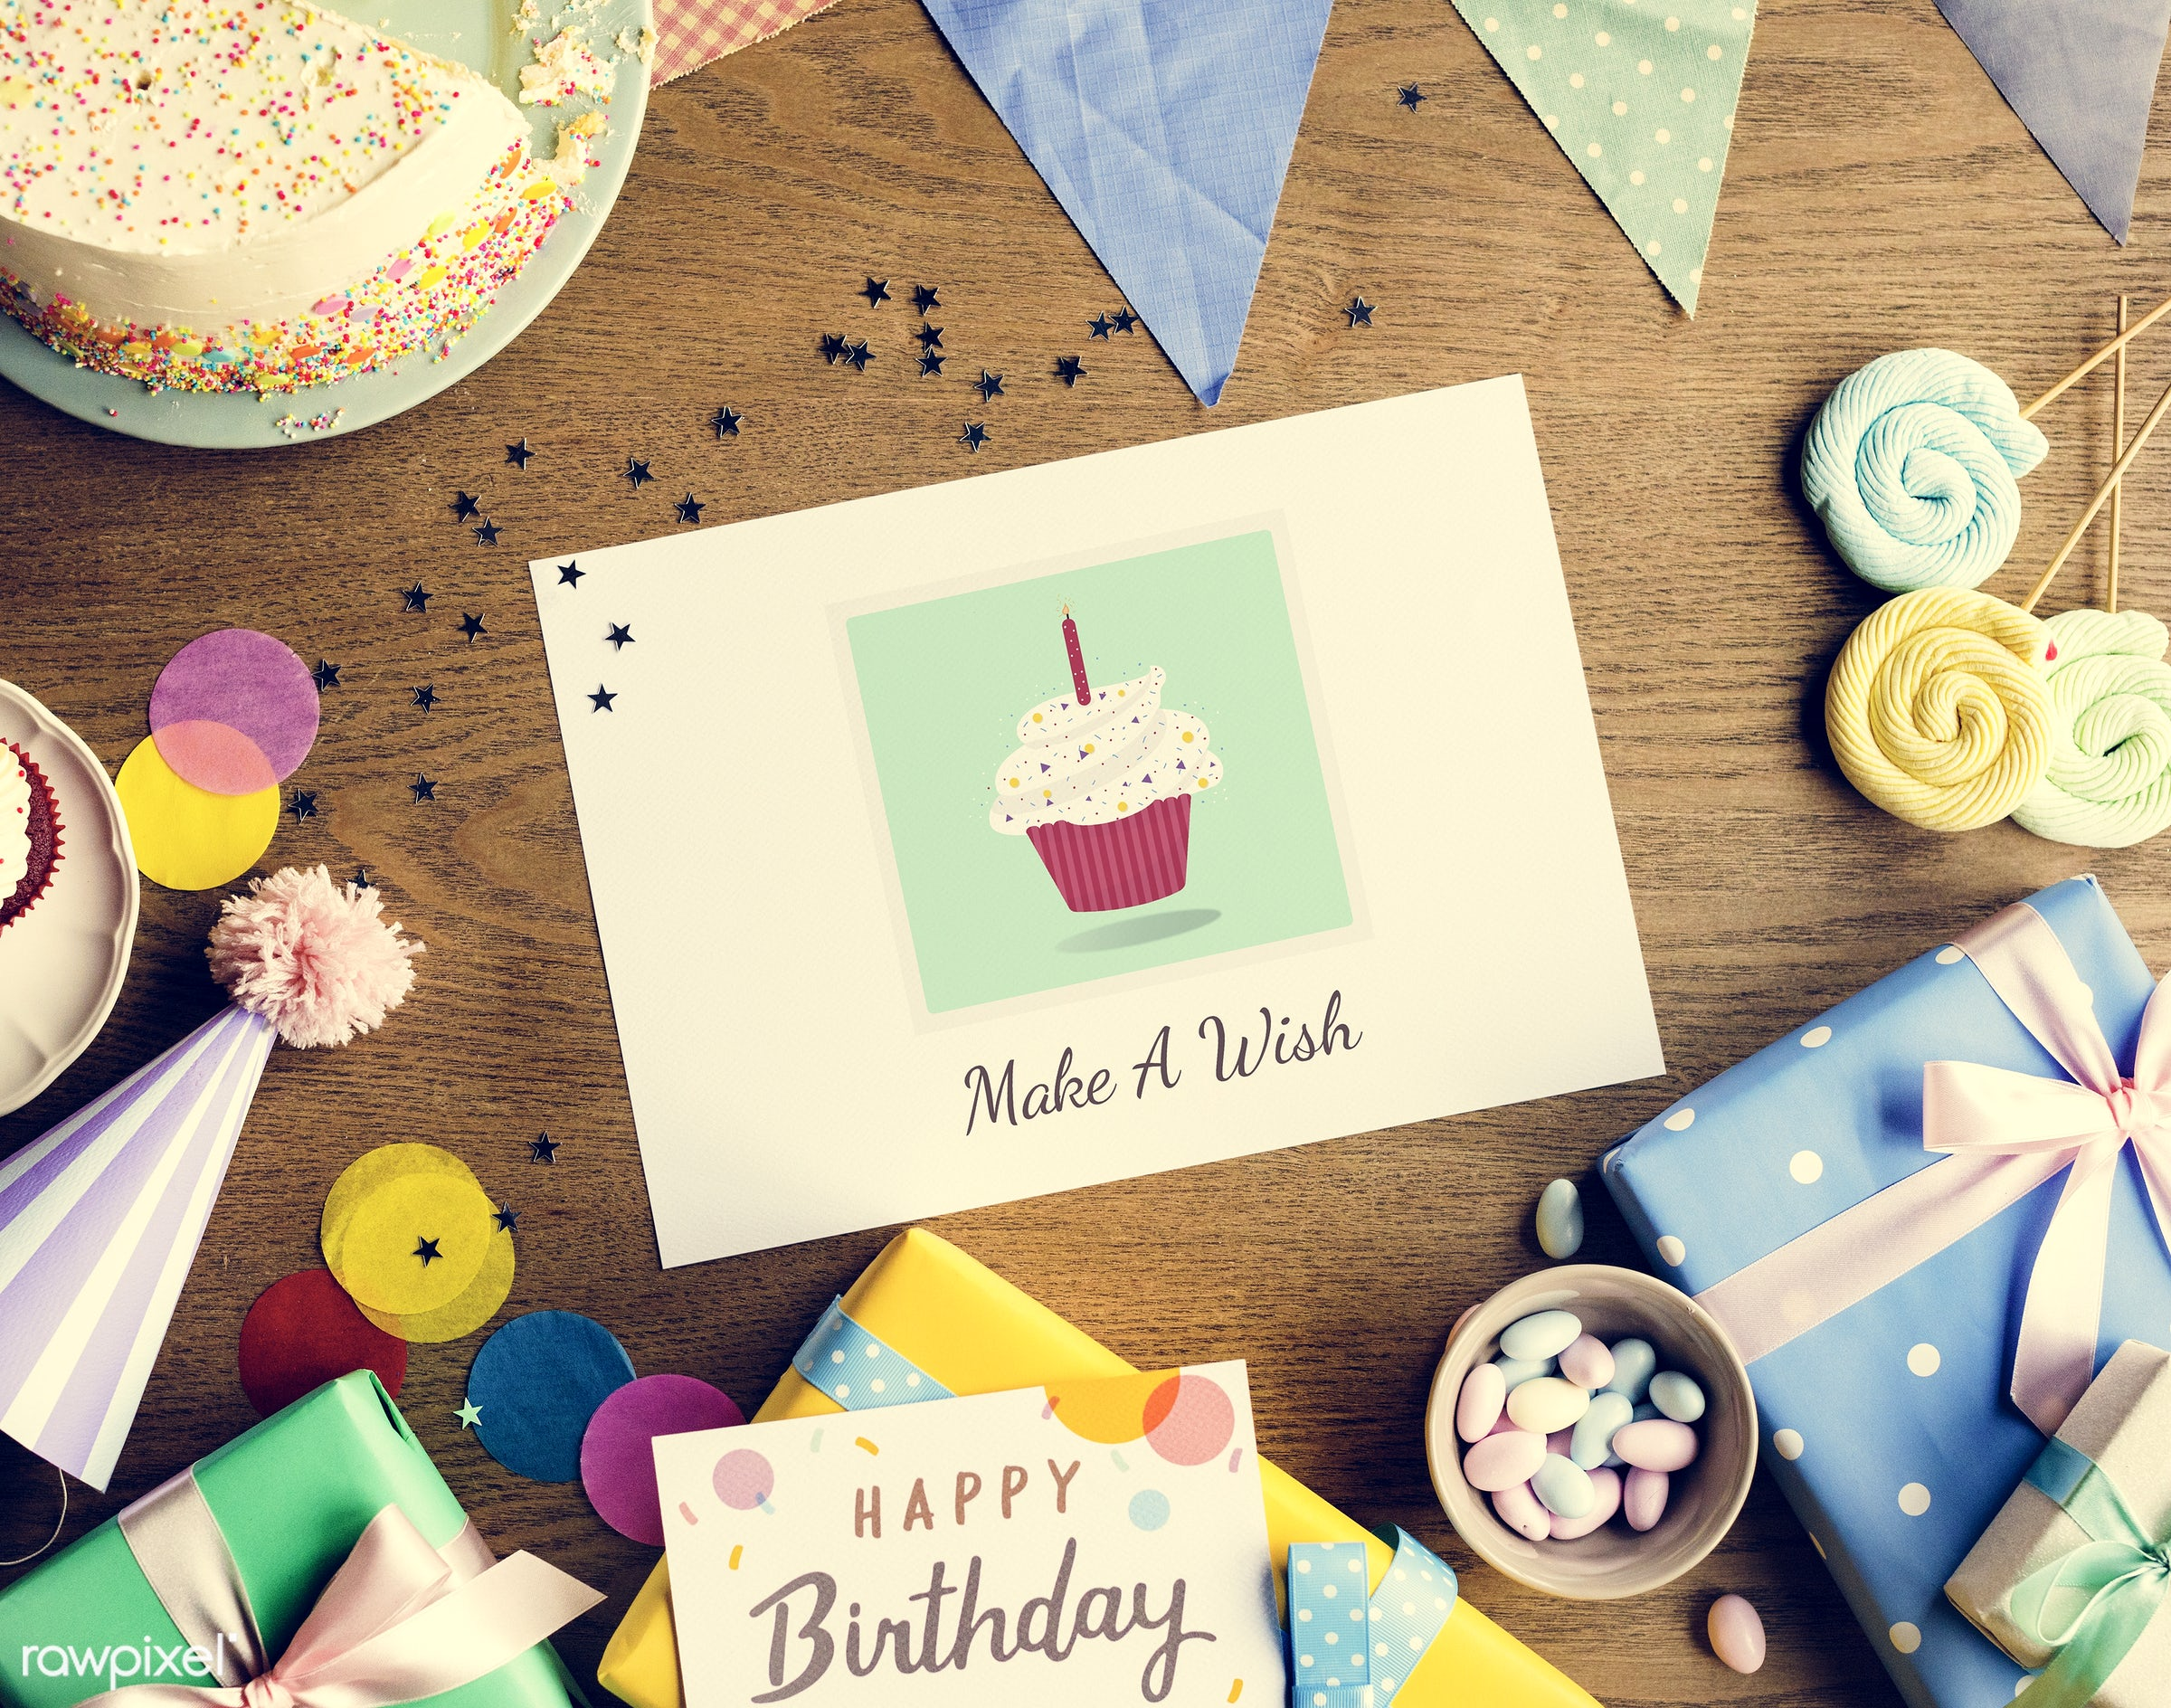 birthday, nobody, gift, graphic, relax, wish, occasion, show, party, hat, bakery, happy, gather, gathering, wooden...